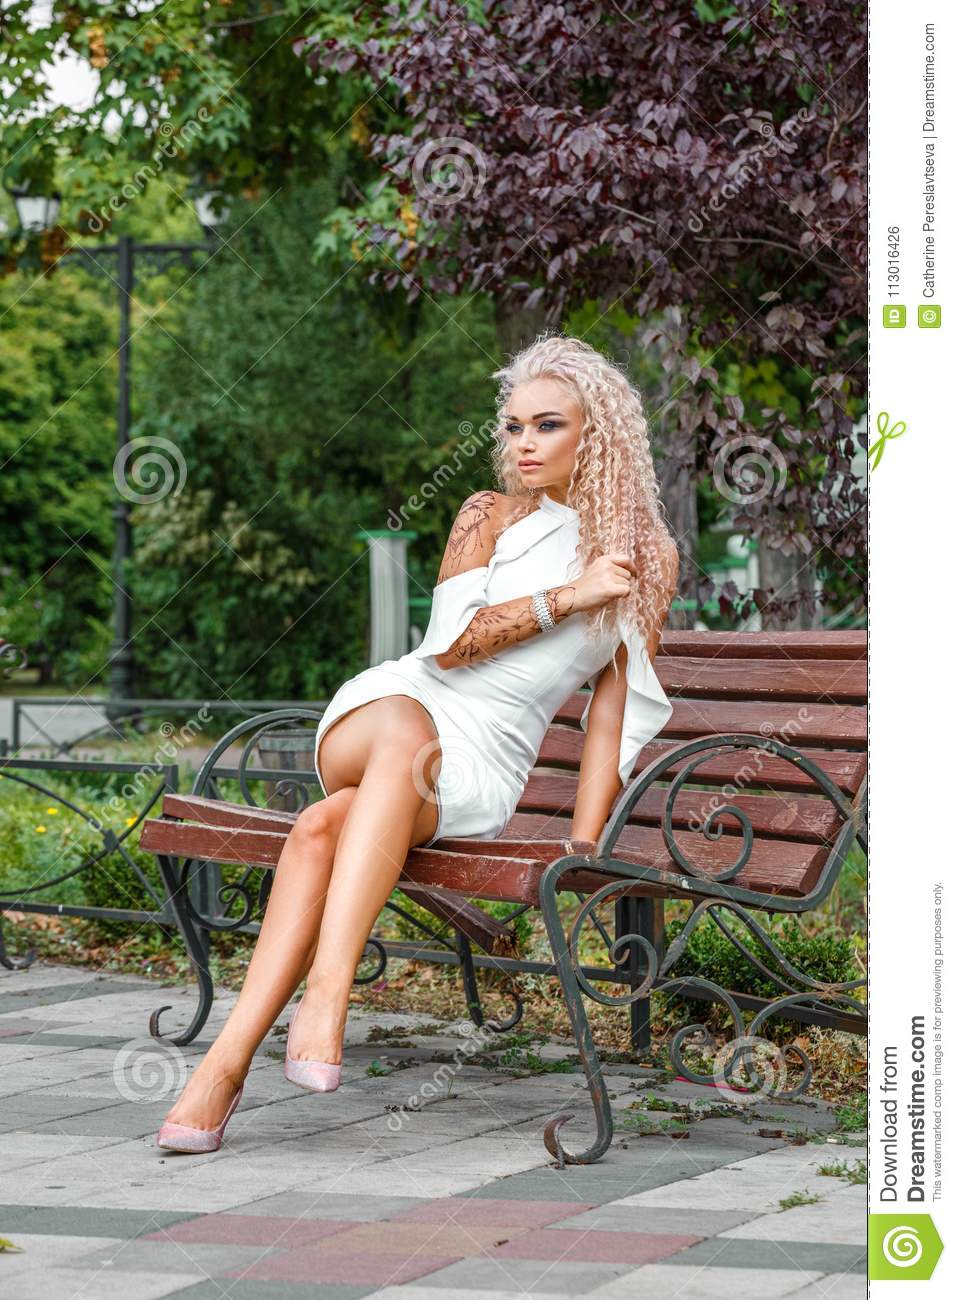 High fashion shot of young blond woman in white short dress